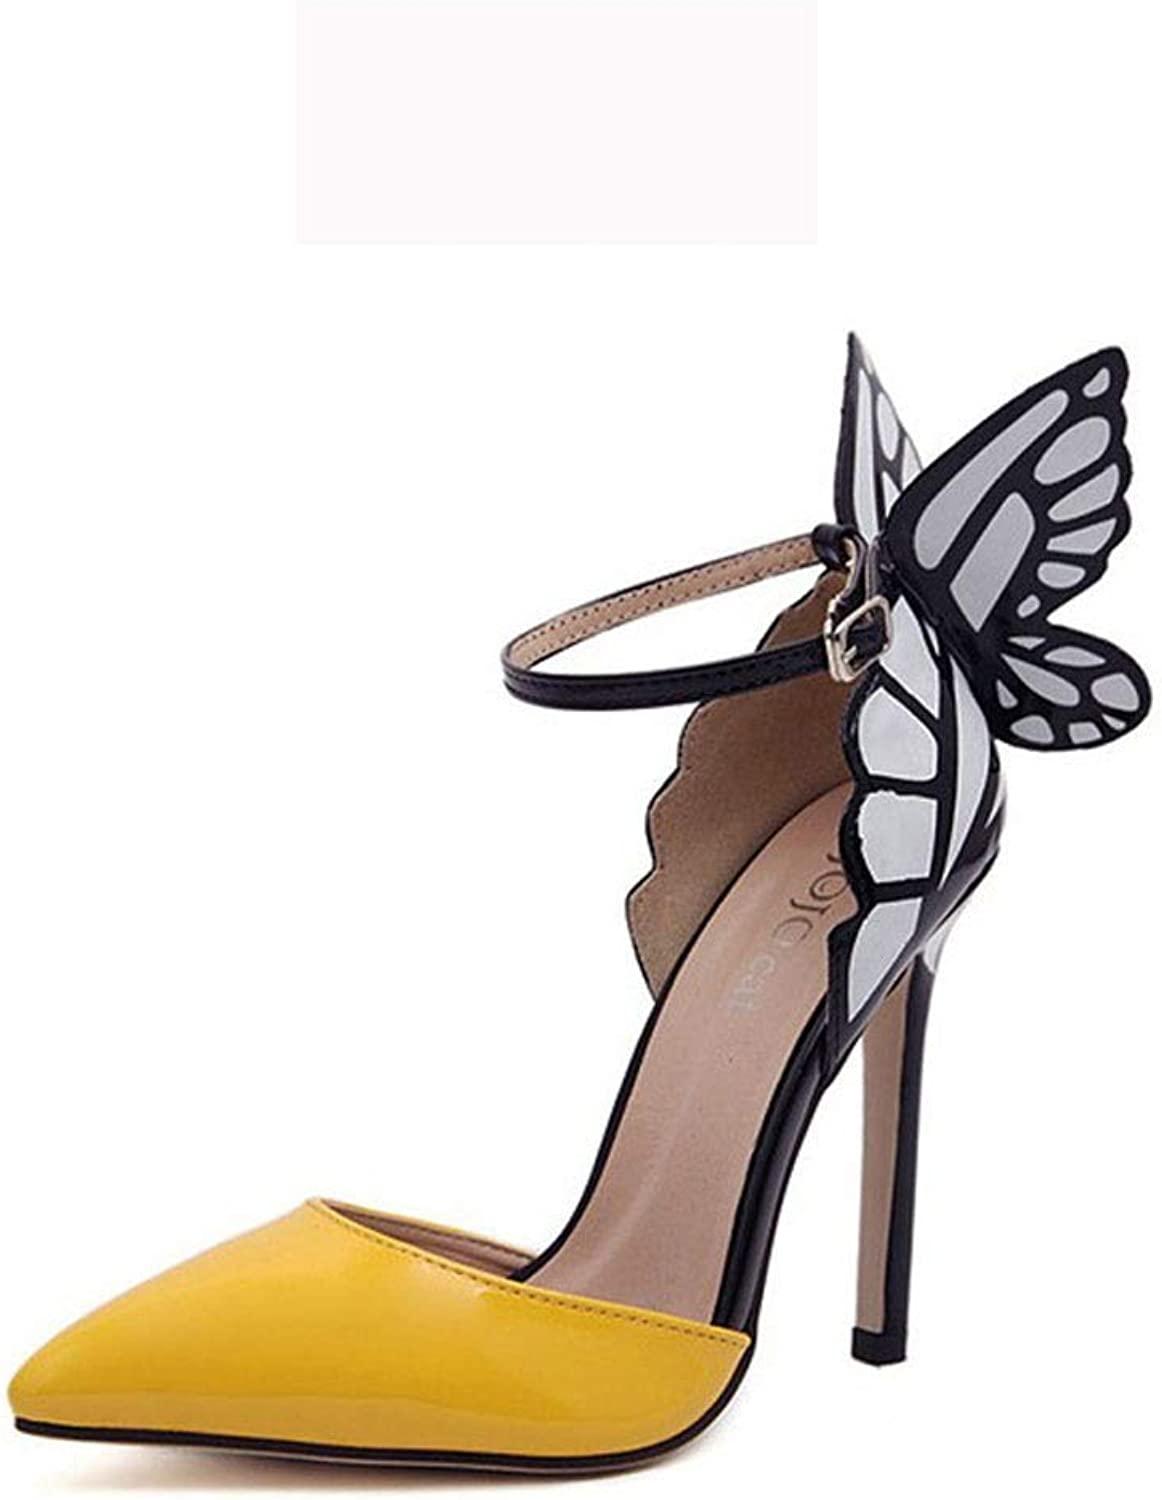 High Heels Fashion Butterfly Stiletto Sandals Fish Mouth Sandals Pointed Shallow Mouth Single (color   Yellow, Size   7 US)